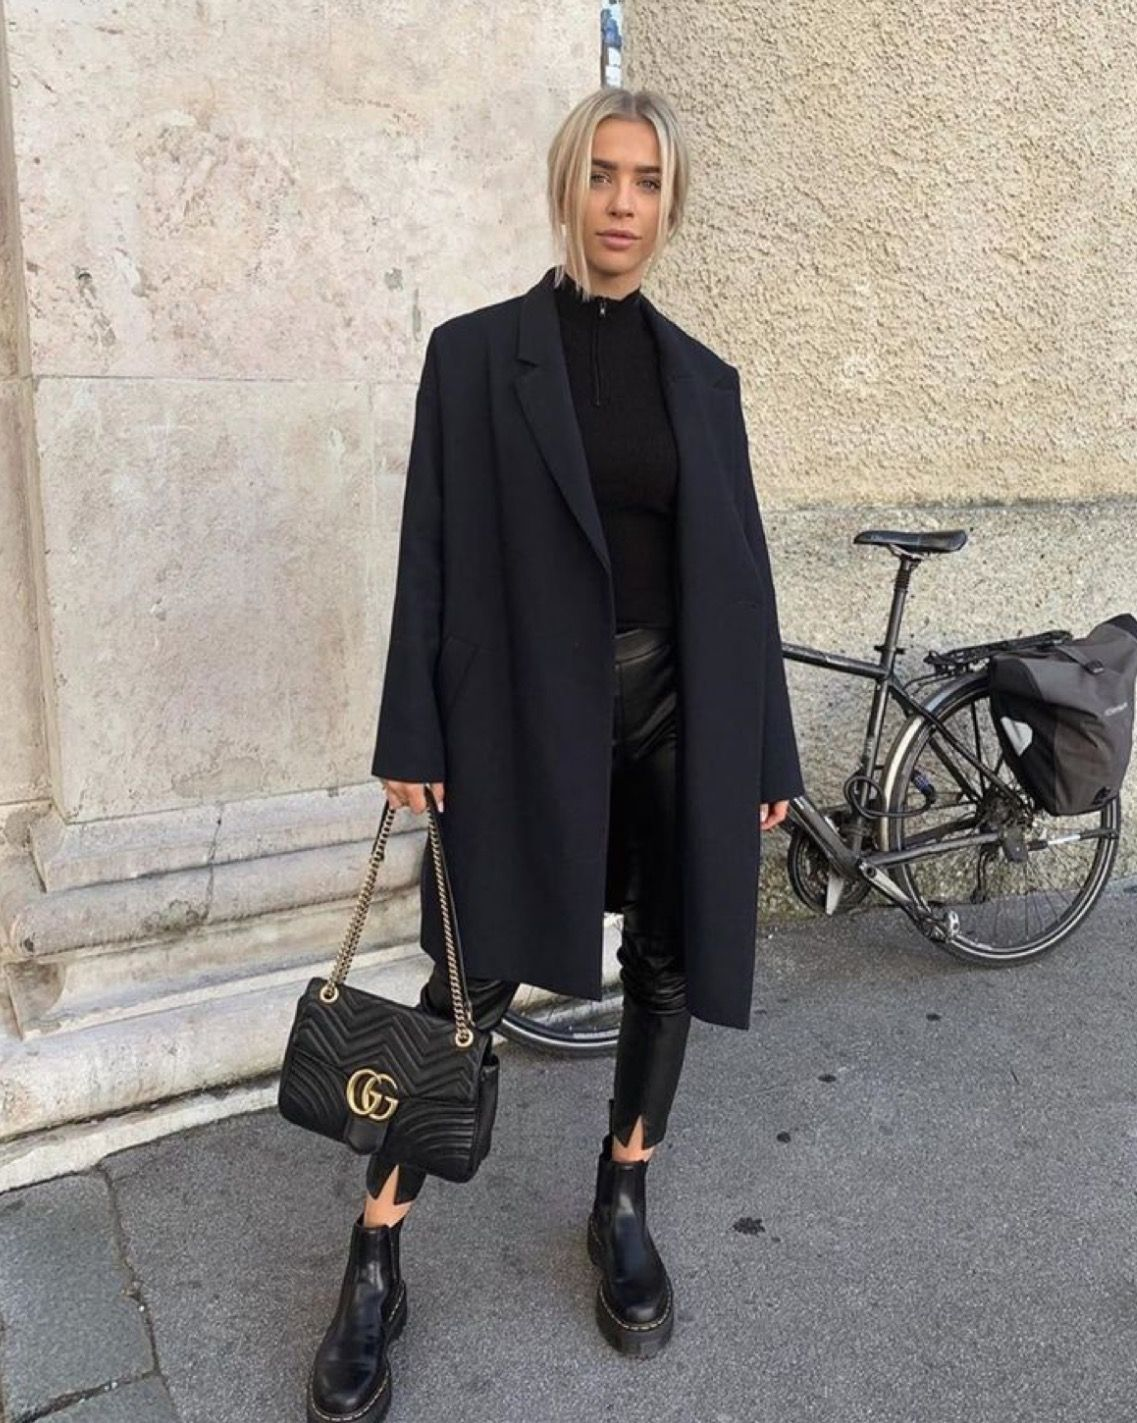 Oversized Black Coat + Leather Pants Street Style. #leatherpantsoutfit